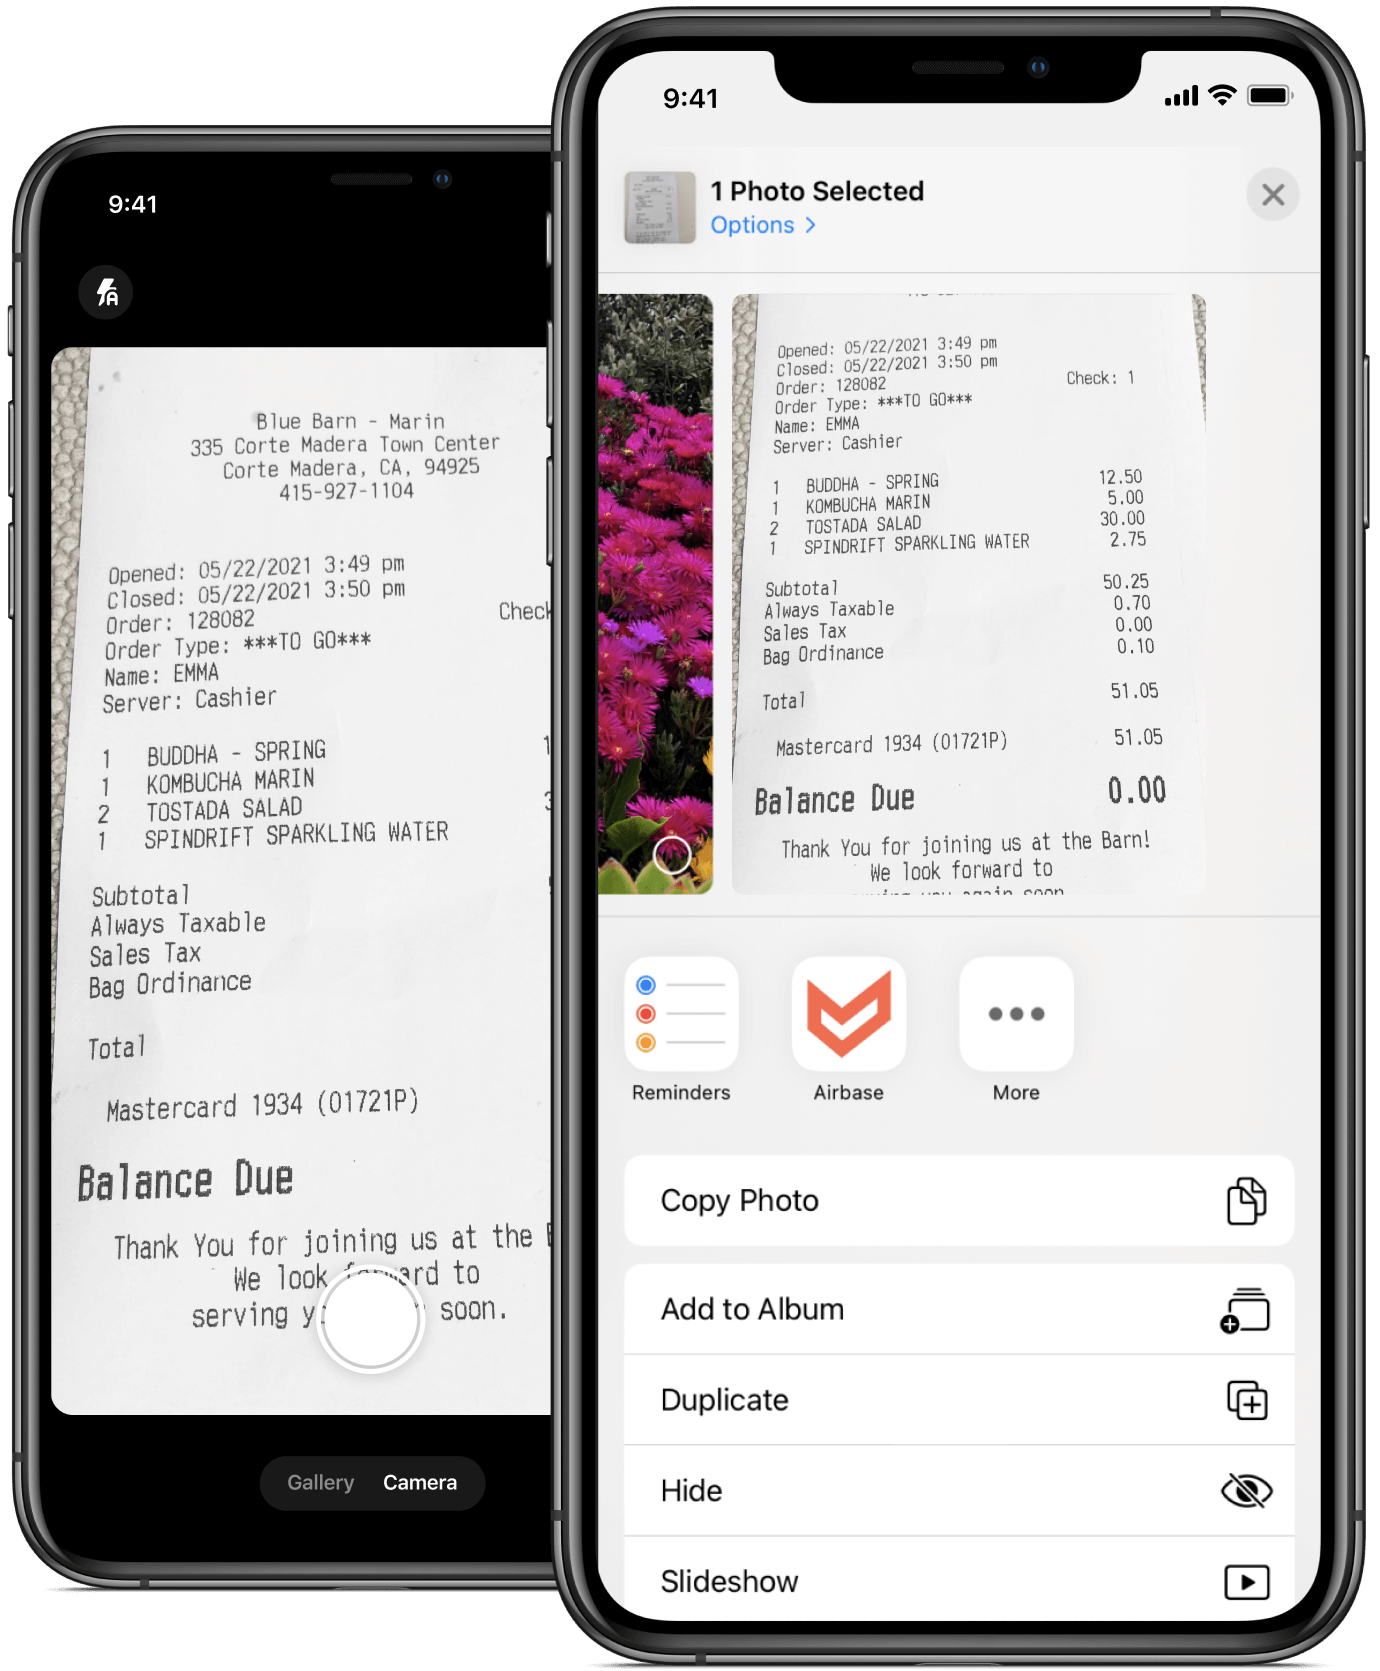 If you have receipts in another mobile app you can easily share them to your Airbase app.